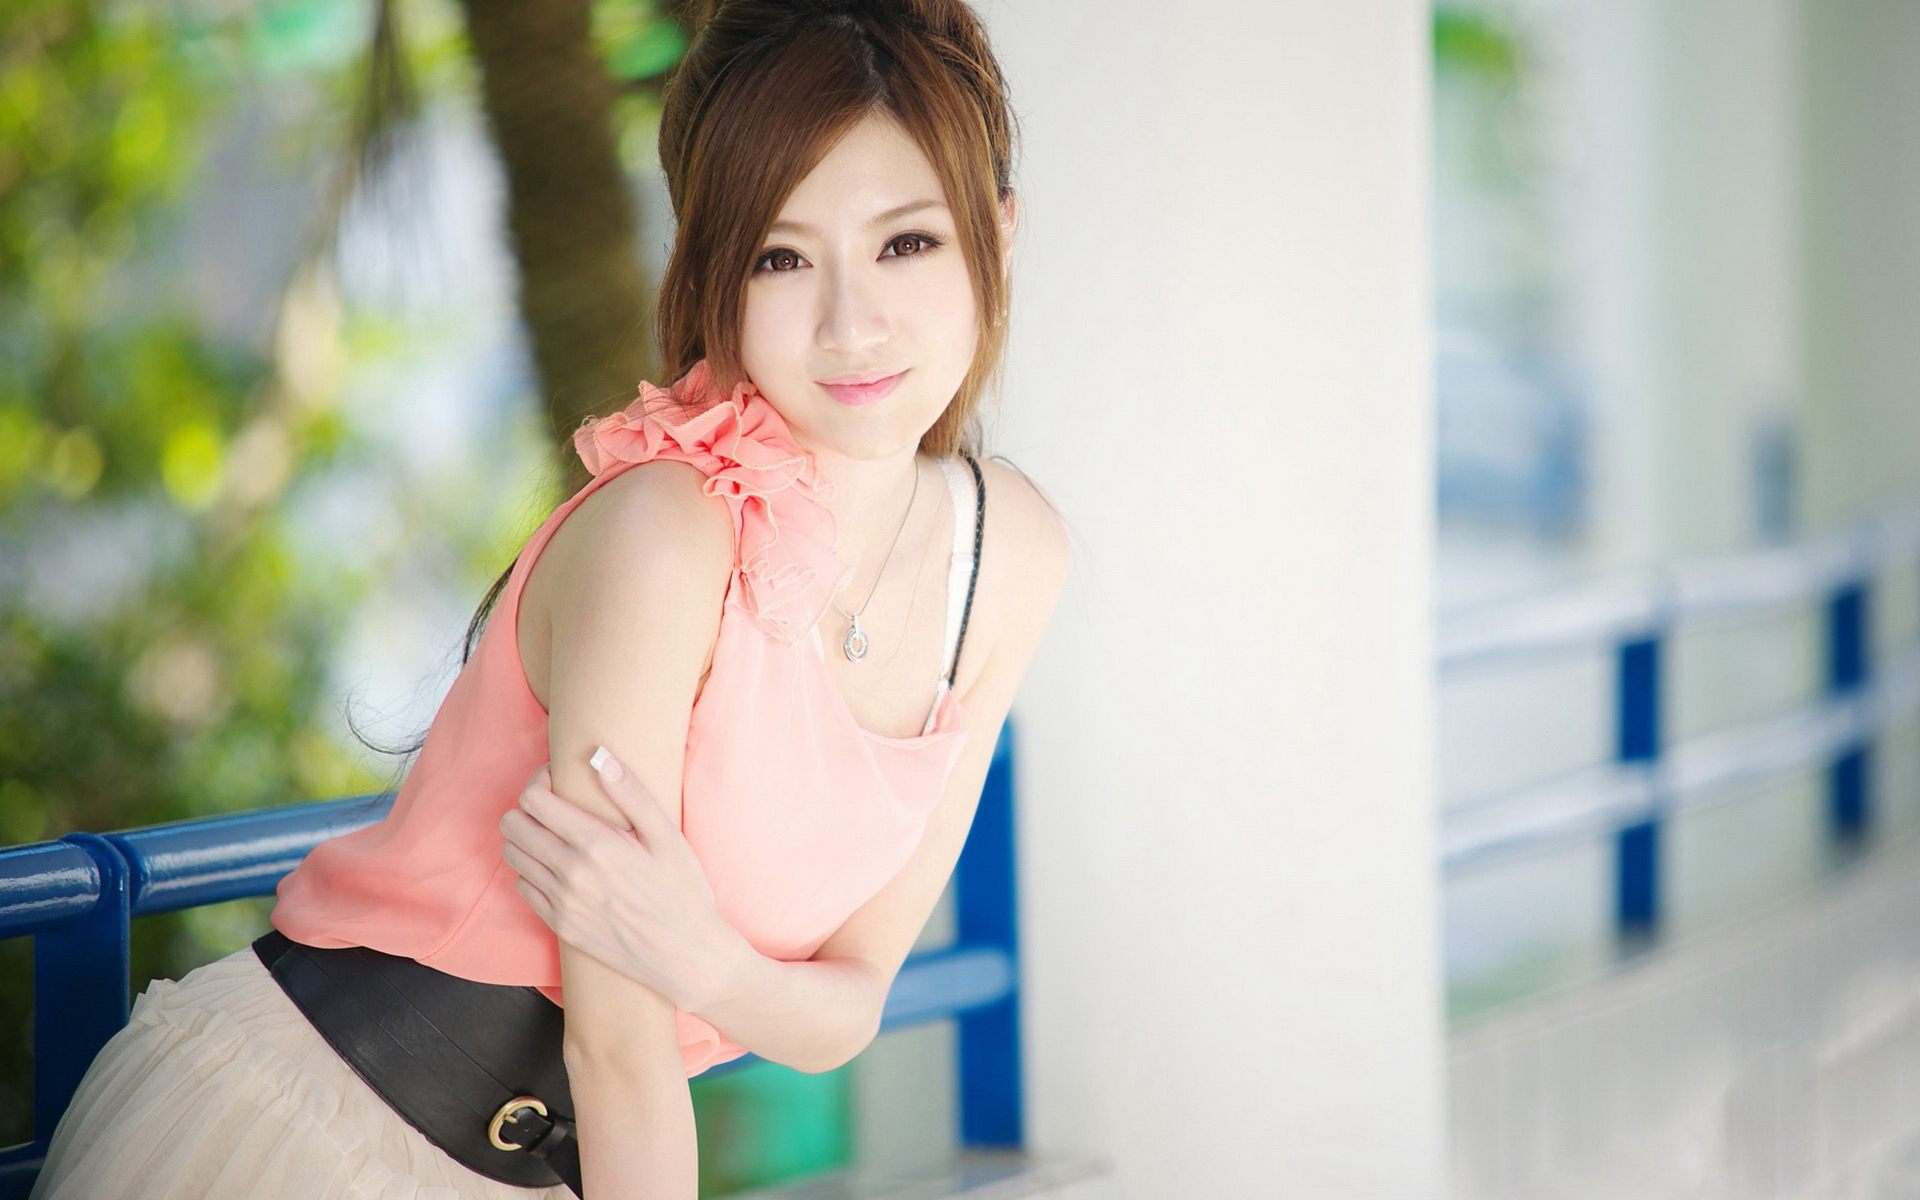 Beautiful-Girl-in-Pink-Dress-Showing-Her-Snowy-Skin-Face-Has-Been-Brightened-up-What-a-Beauty-HD-Attractive-Girls-Wallpaper.jpg (1920×1200) | nice | ...